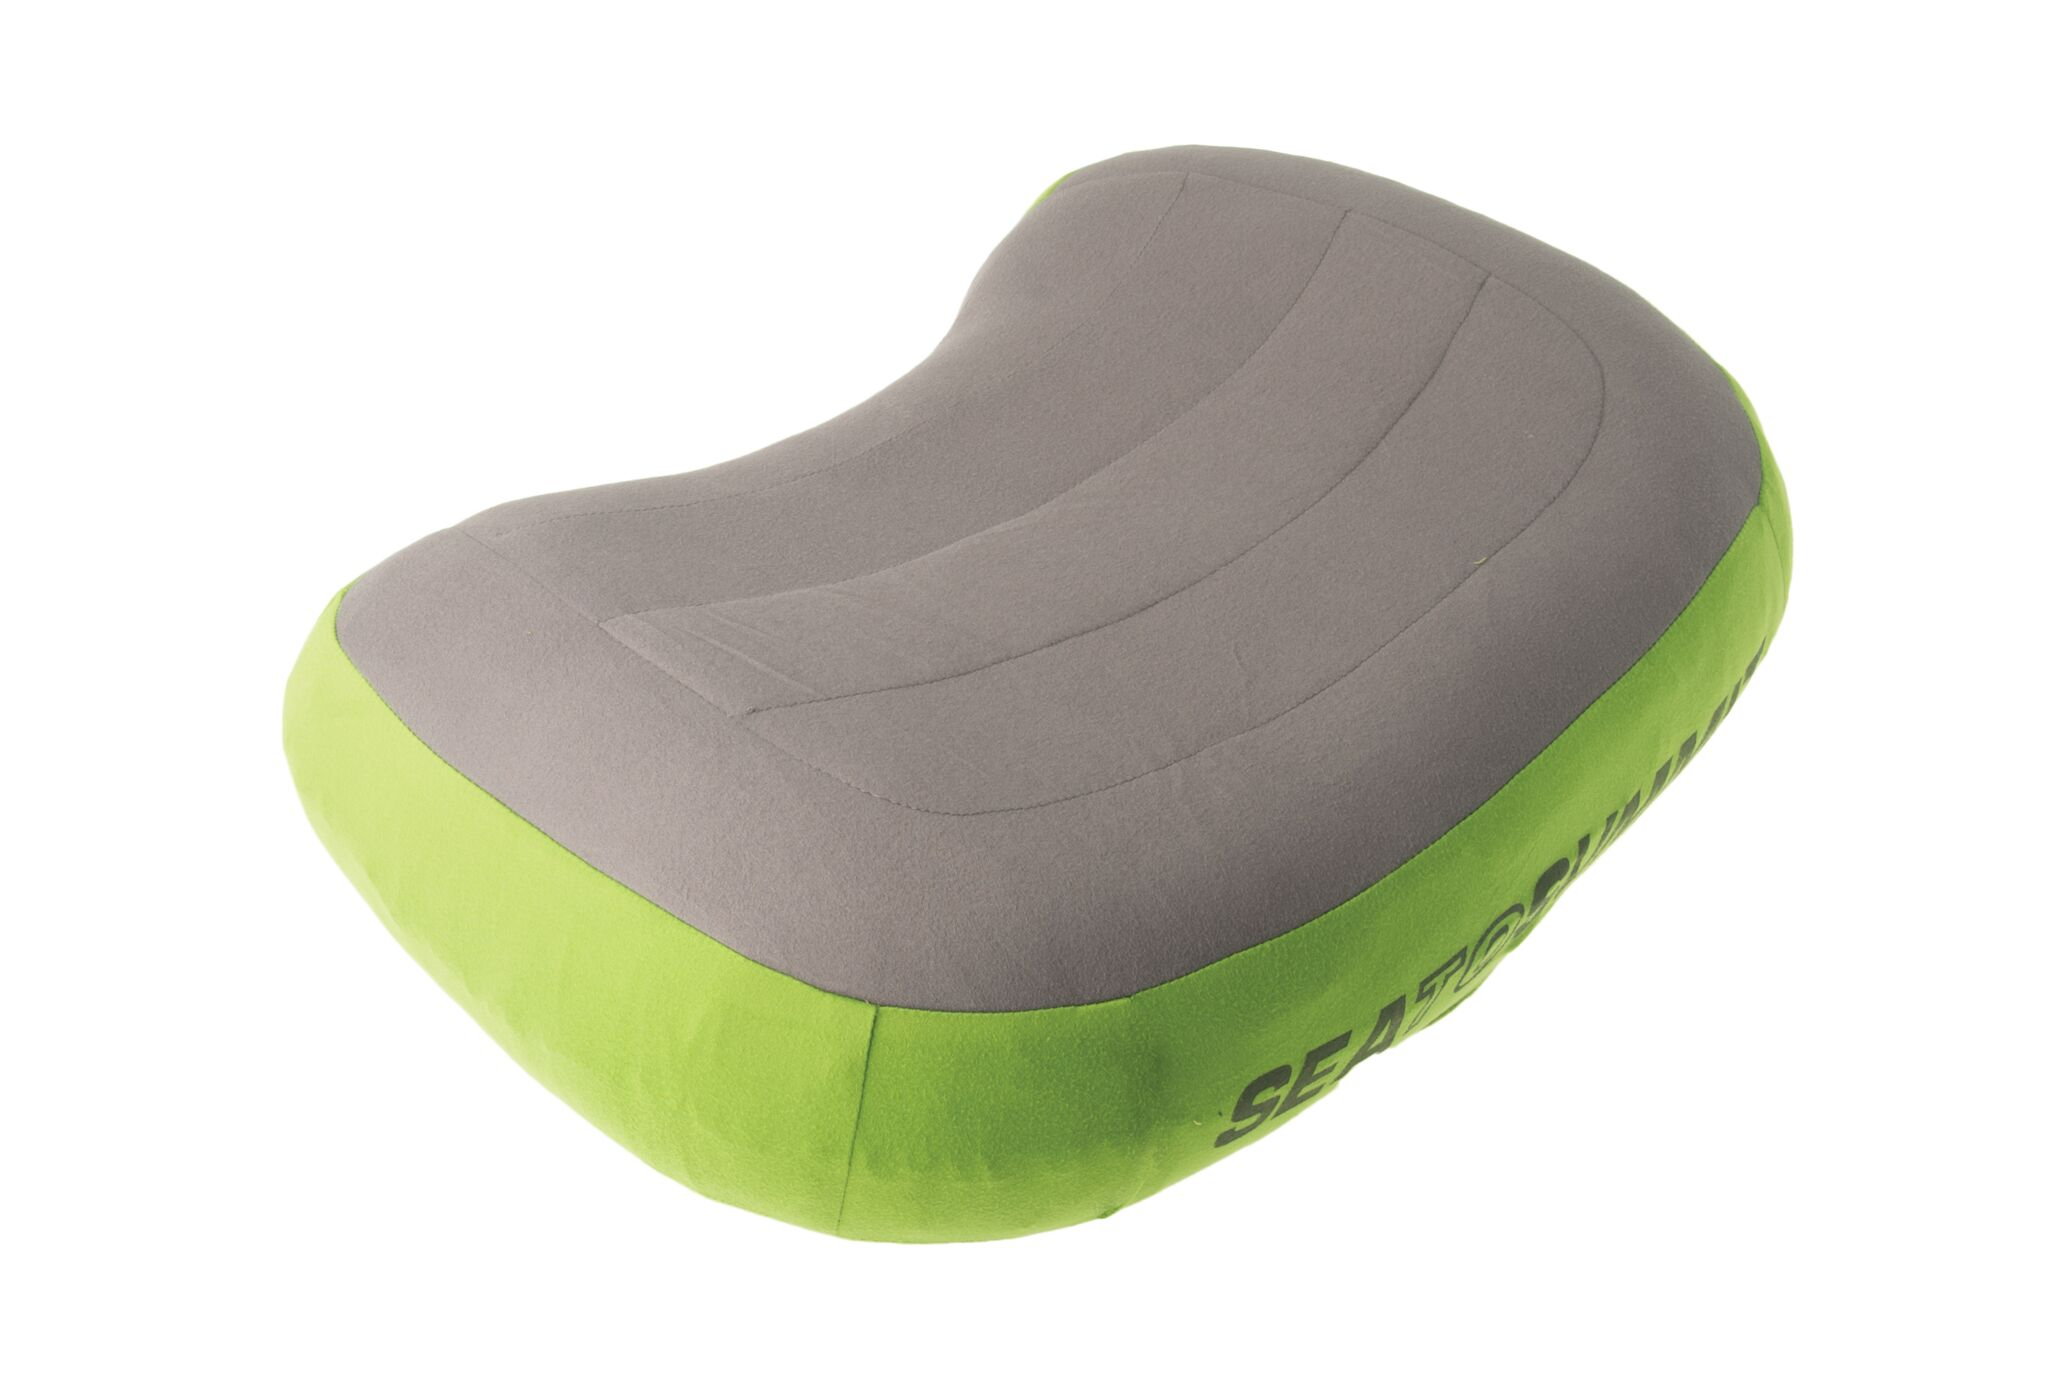 Seatosummit Aeros Premium Pillow Regular Grøn